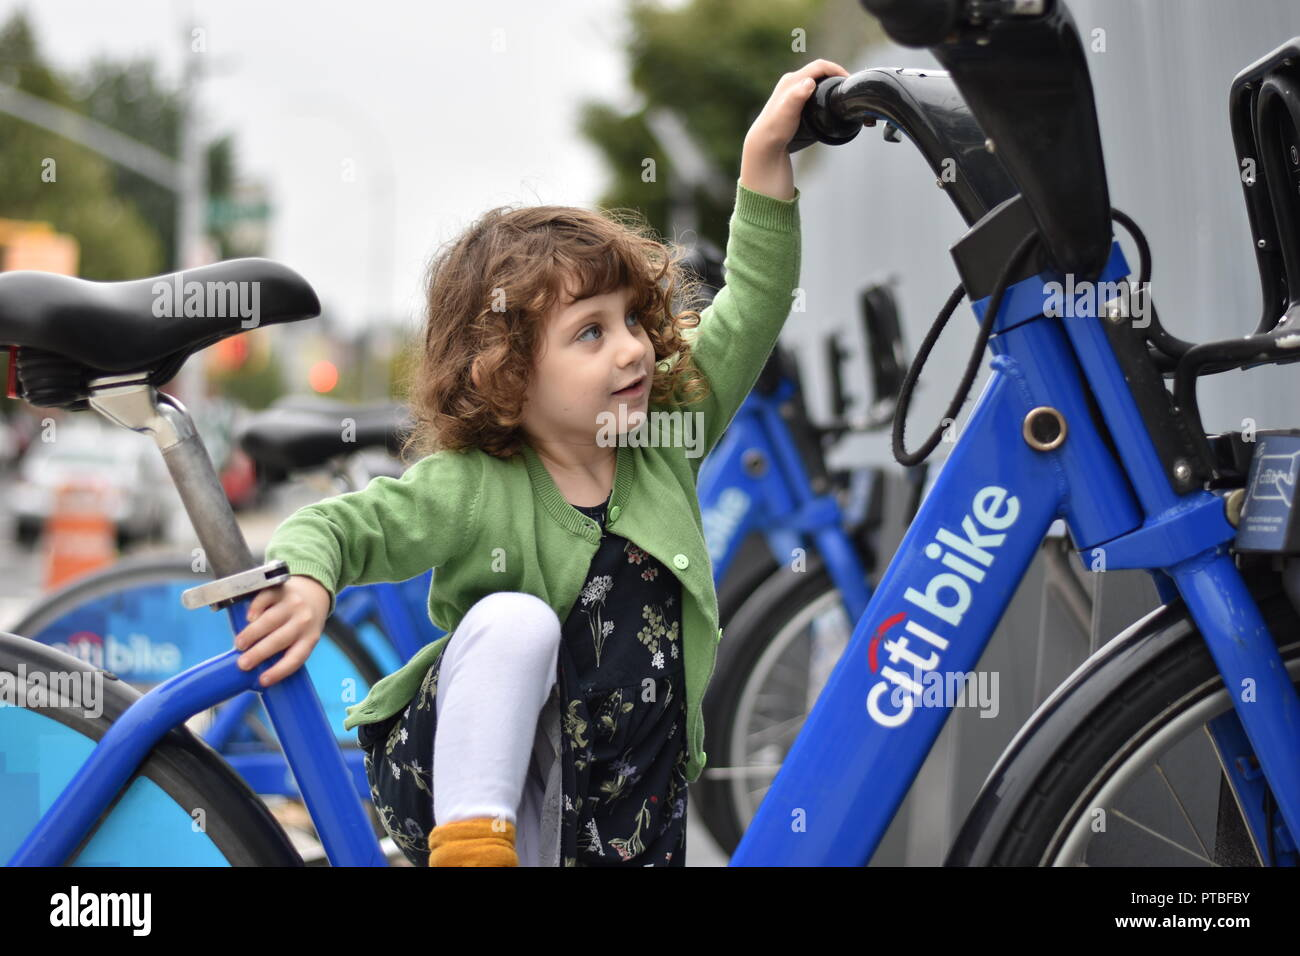 A fearless little girl with curly hair climbs onto a Citibike with a look of determination in her eye, despite not knowing how to ride a bicycle. - Stock Image